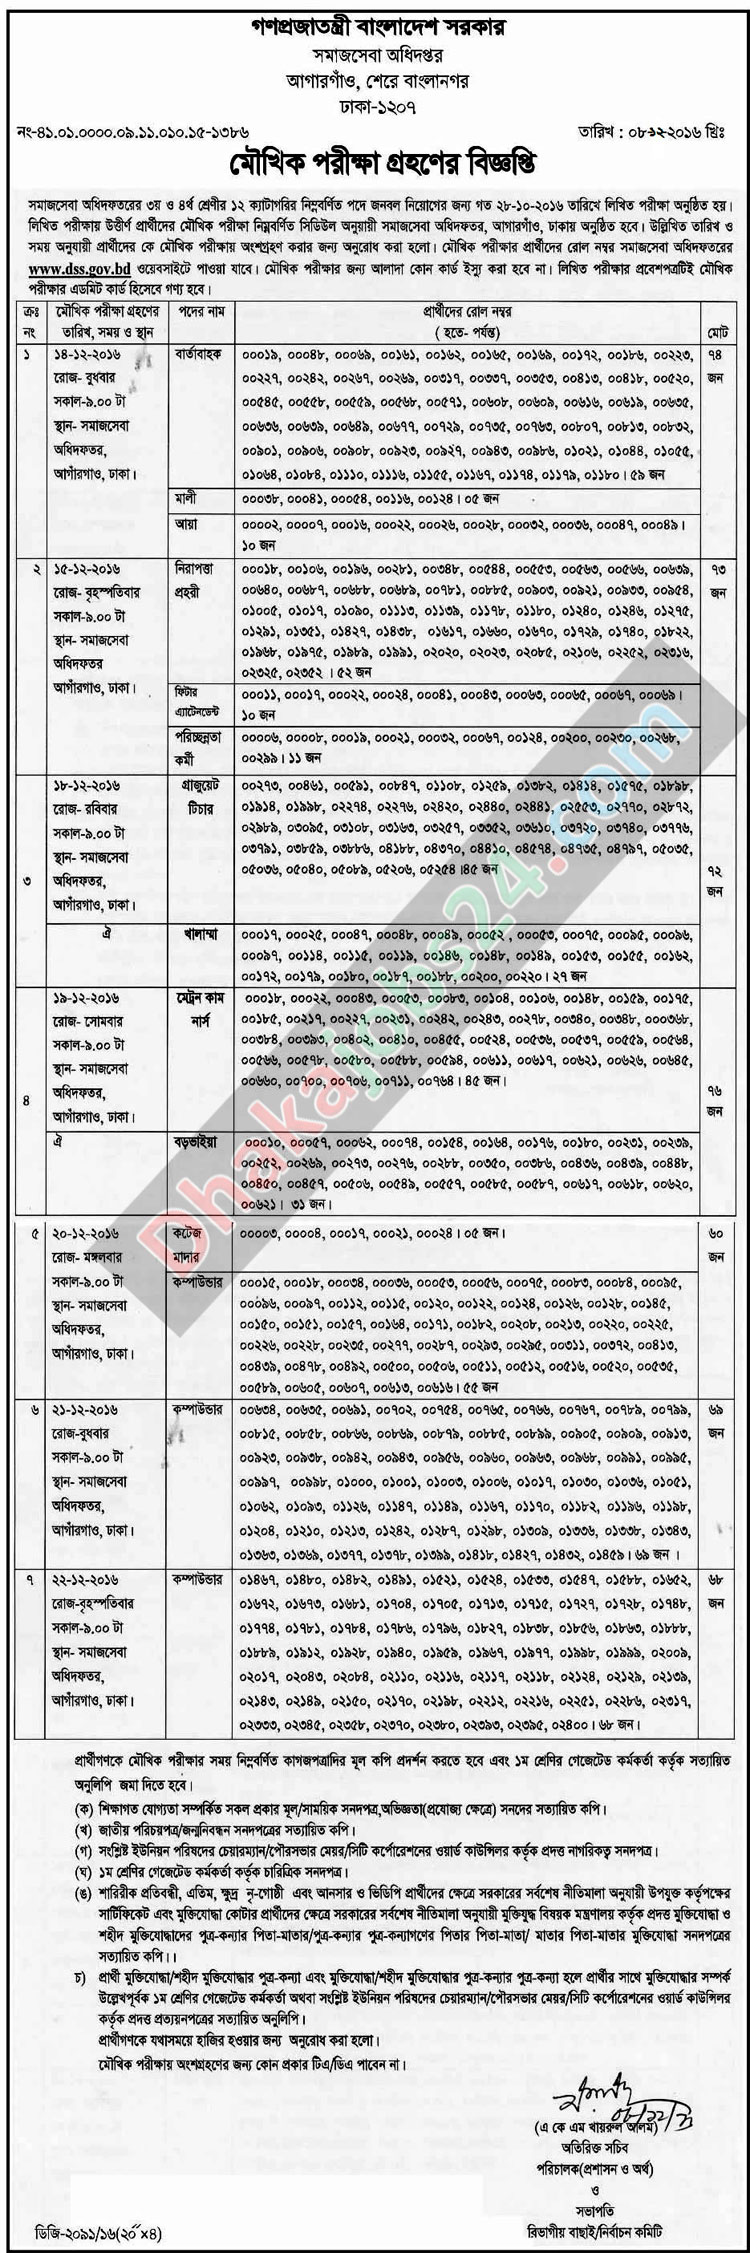 Social Services Department Written Result 2016